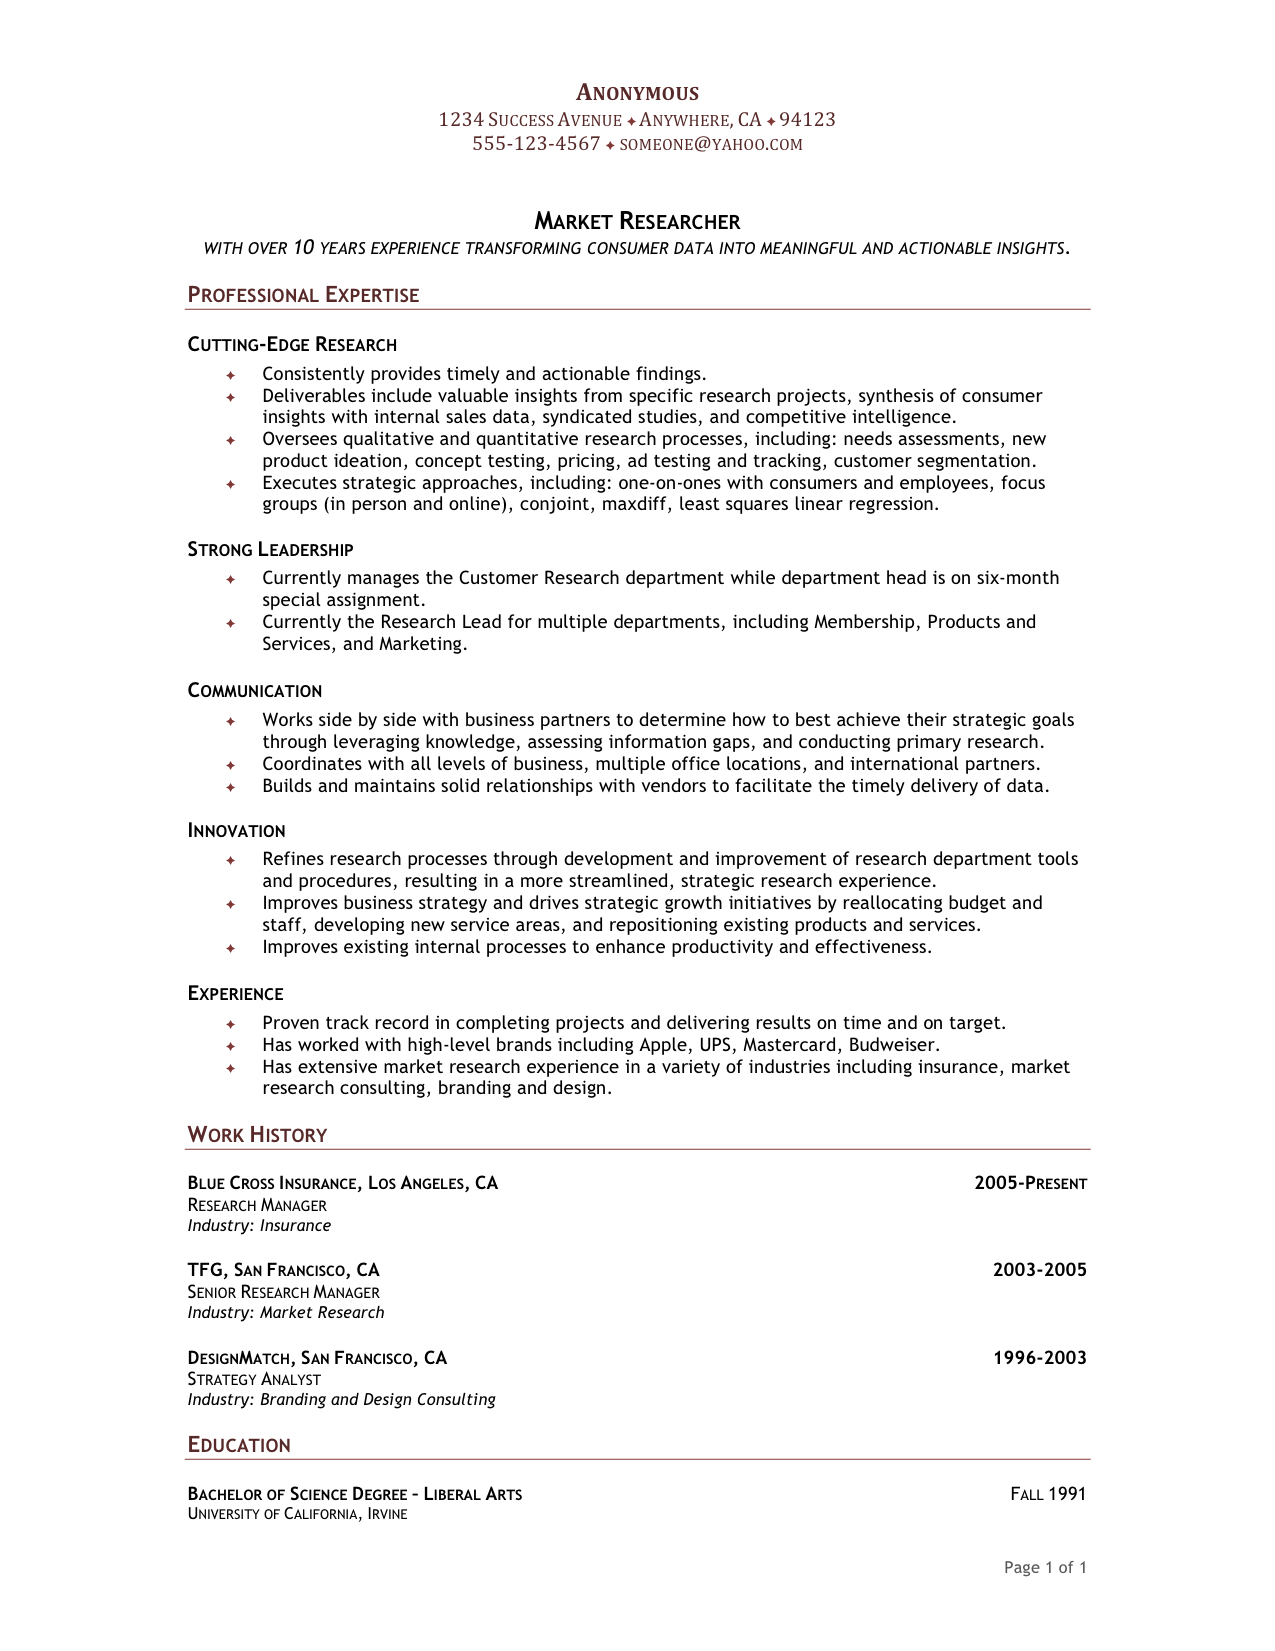 Home Resume Good Writing Guide Royal Holloway Resume For Home Health